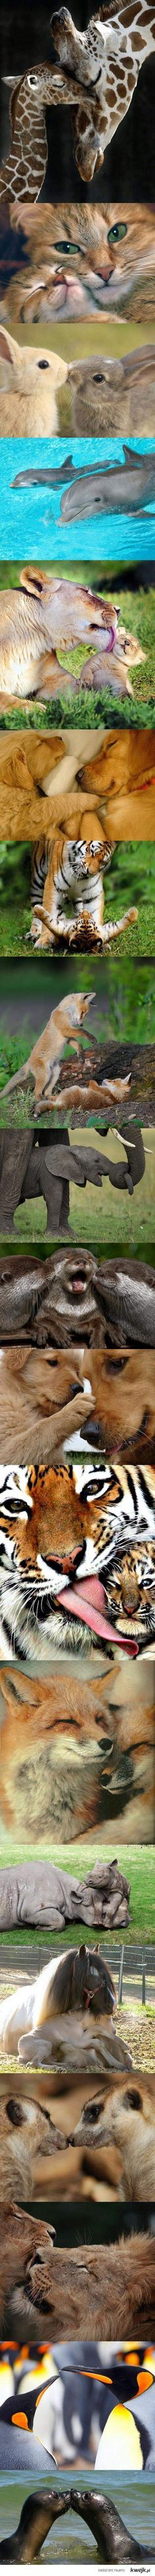 Animals have souls - Look at the love they share